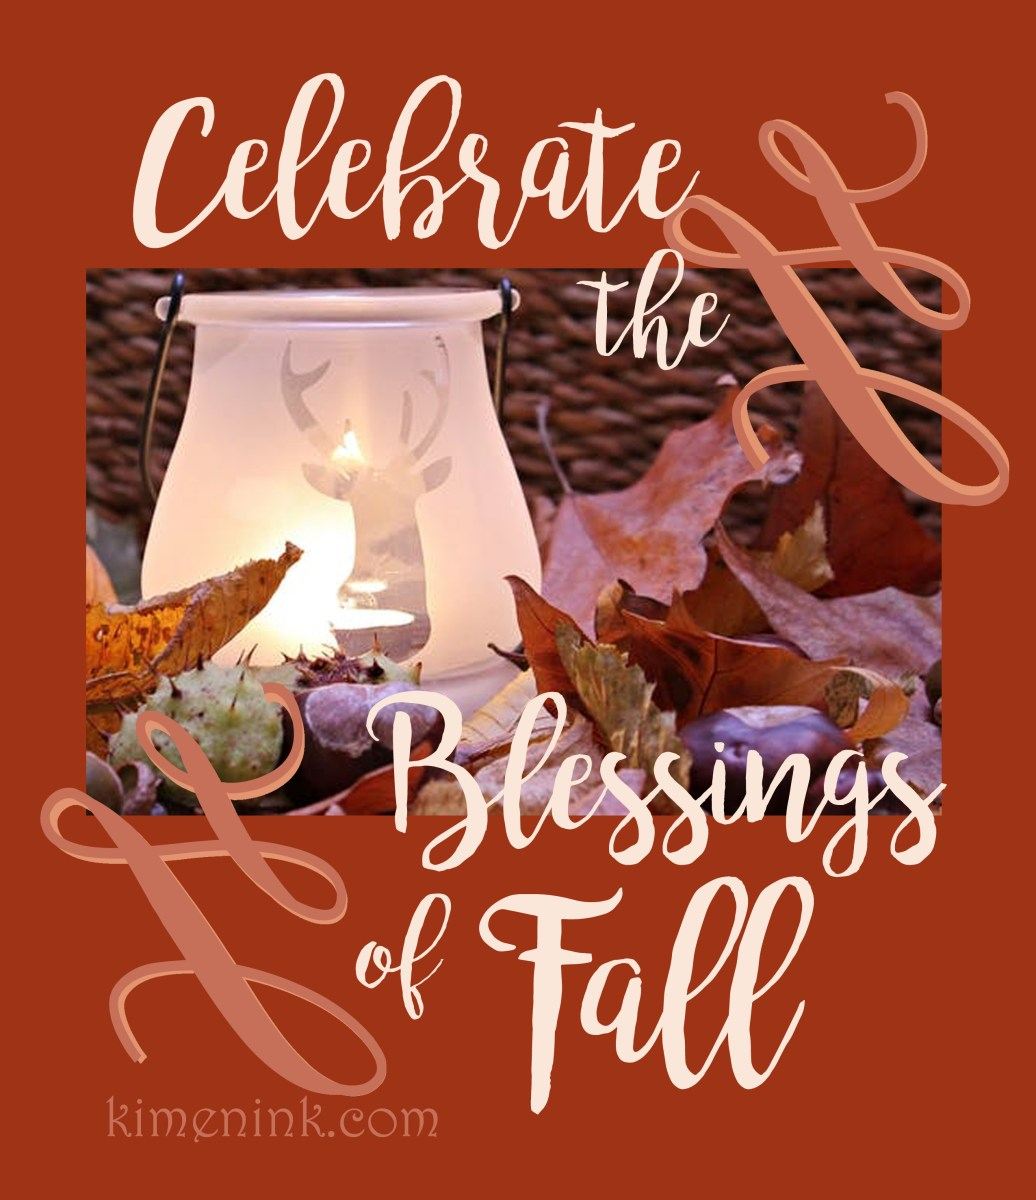 Gather Together and Celebrate The Many Blessings of Fall